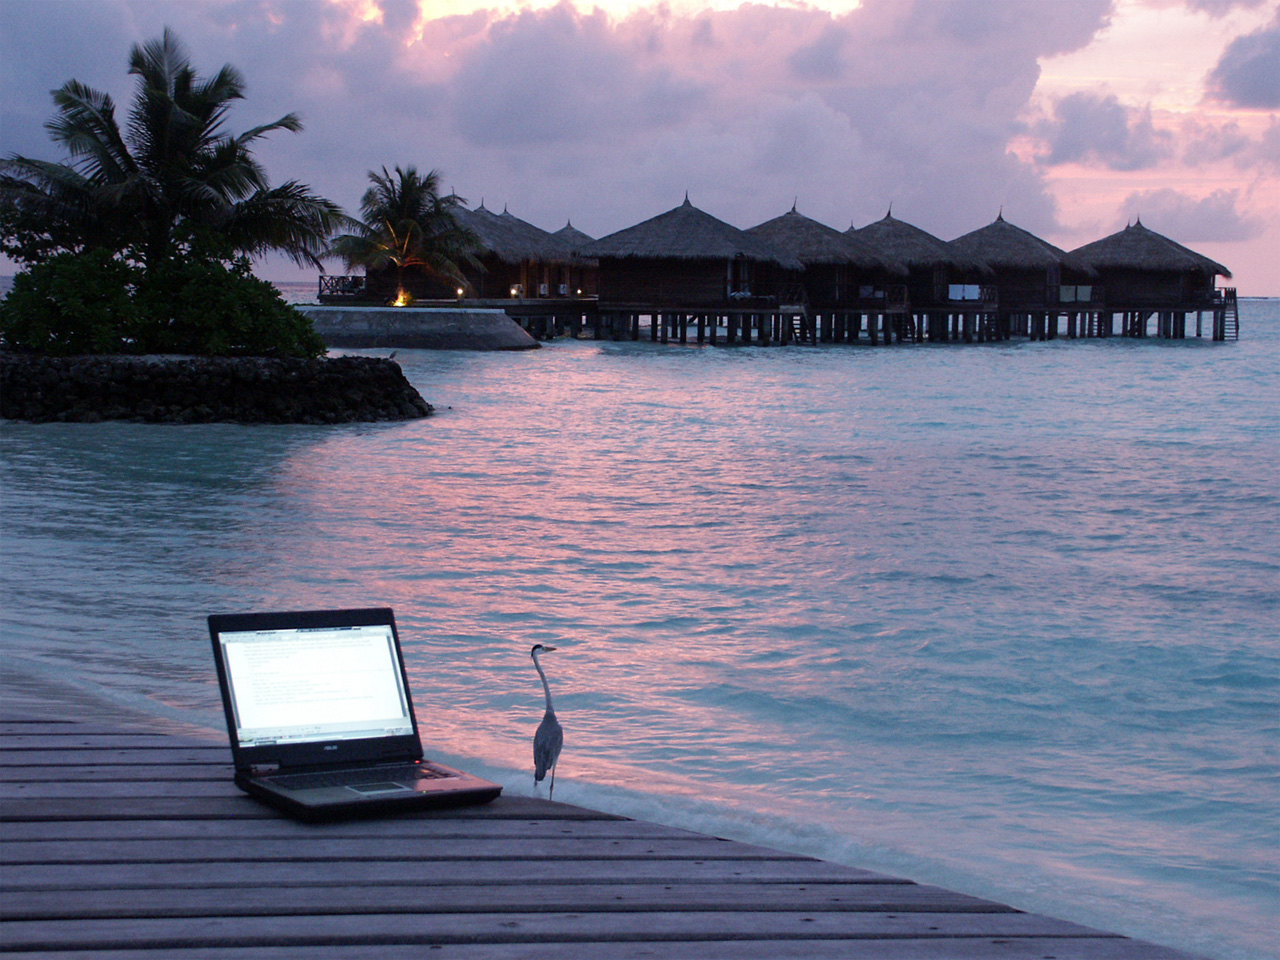 Combining work and travelling like a digital nomad is the dream of many folks